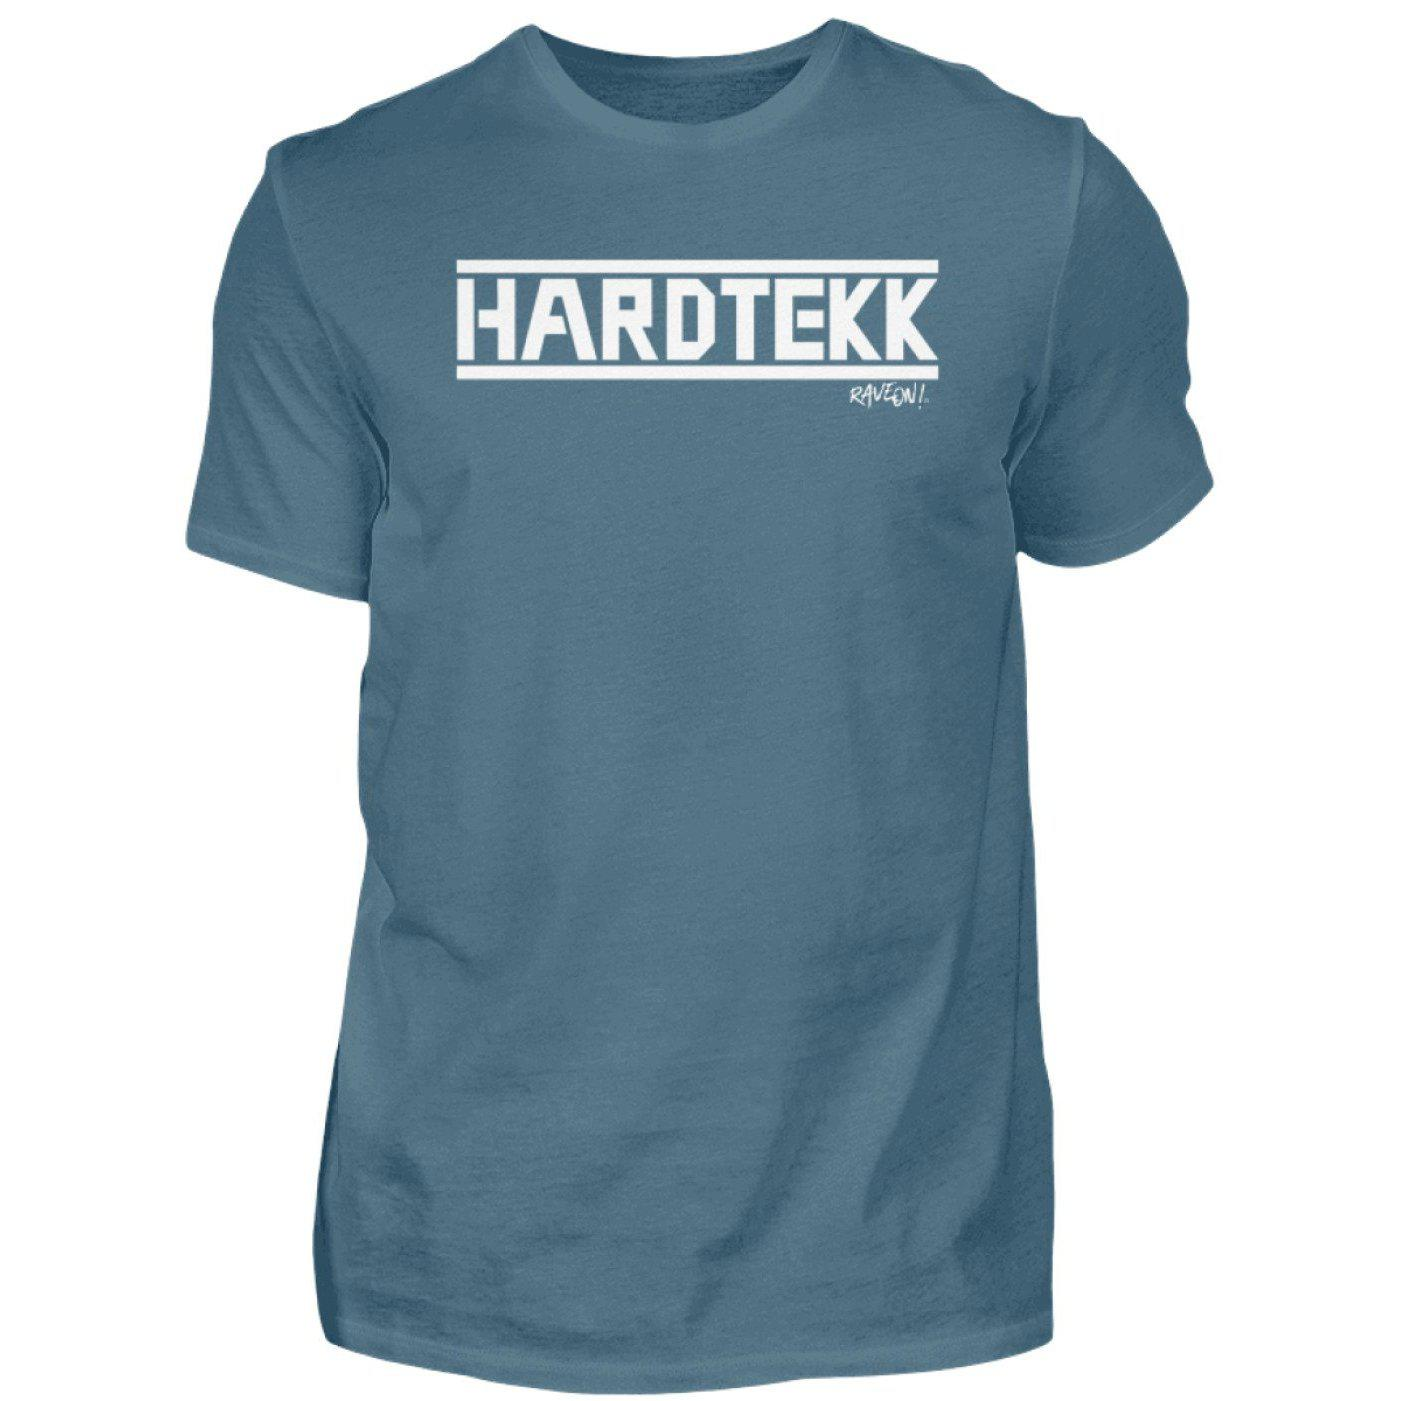 HARDTEKK - Rave On!® - Herren Shirt-Herren Basic T-Shirt-Stone Blue-S-Rave-On! I www.rave-on.shop I Deine Rave & Techno Szene Shop I Design - HARDTEKK - Rave On!®, Global recommendation, hardtekk, on, rave, techno, Tekk, tekkno - Sexy Festival Streetwear , Clubwear & Raver Style